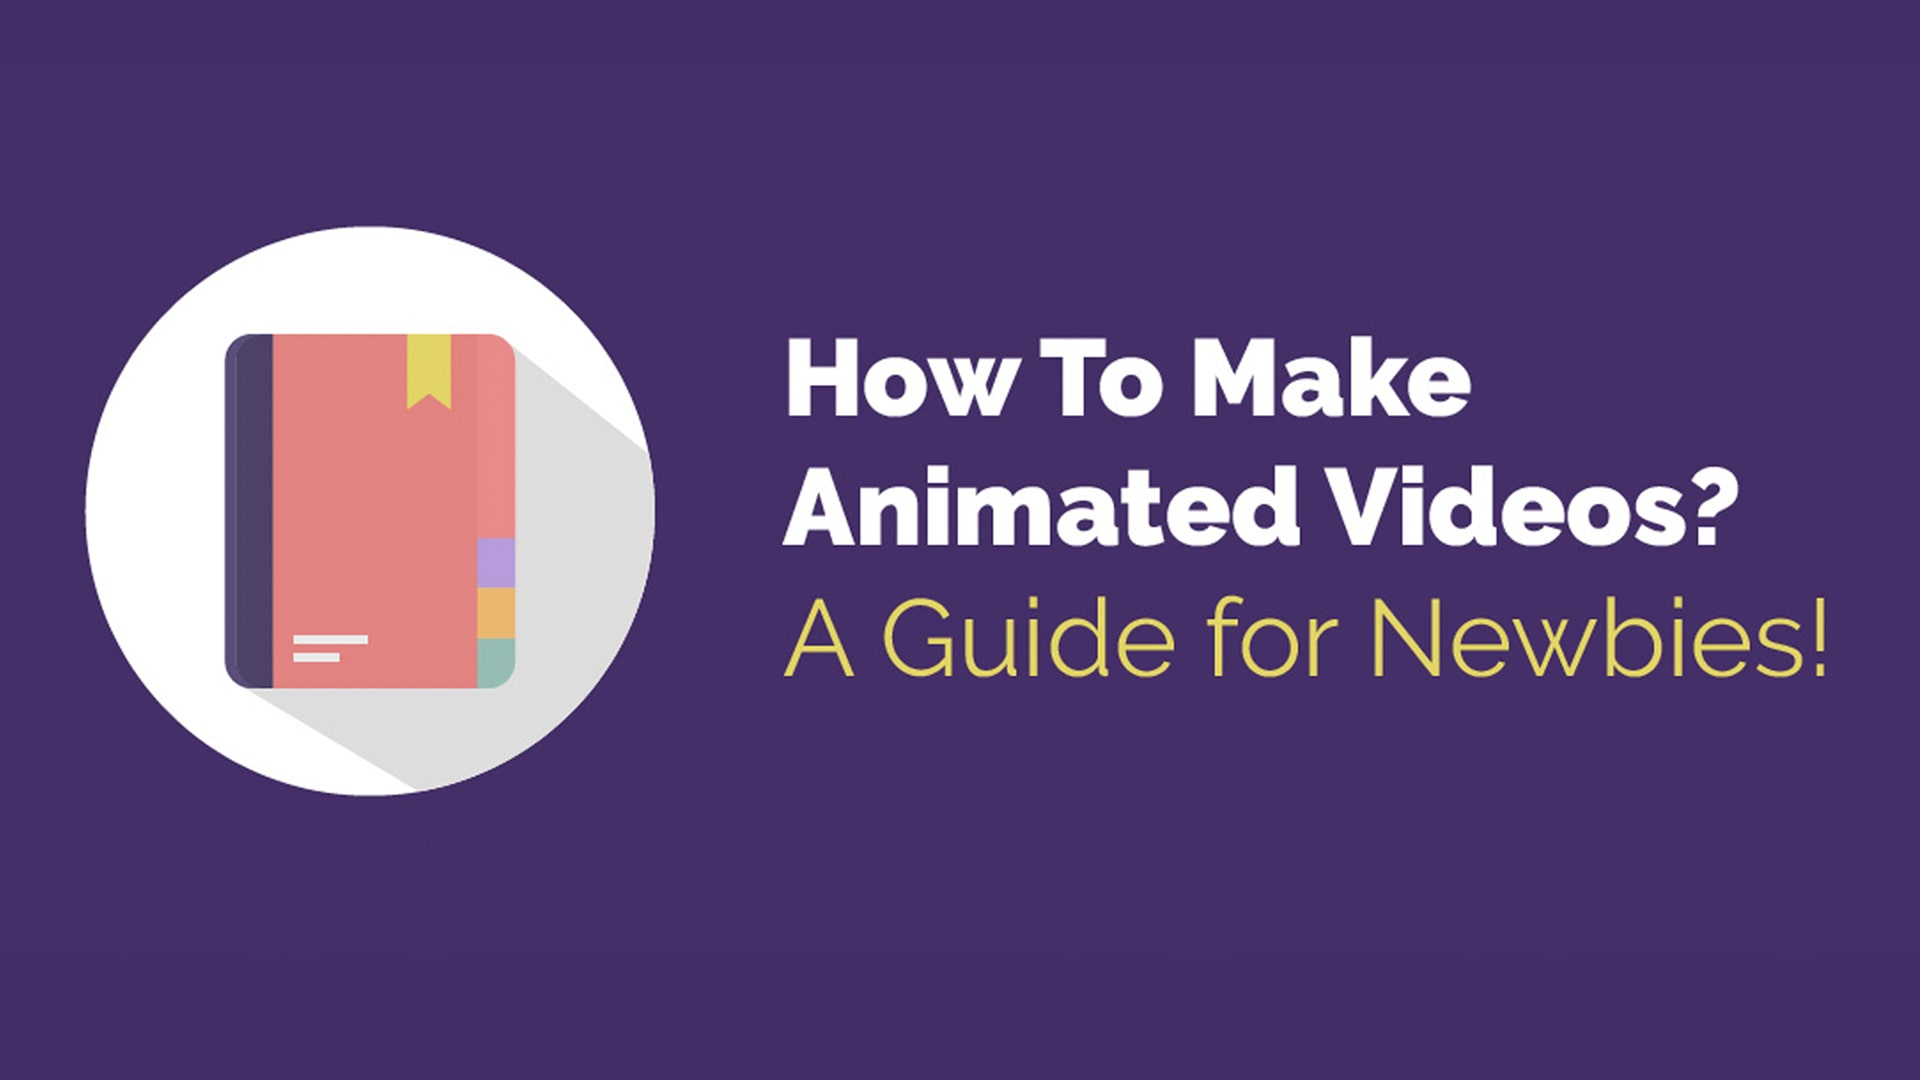 How To Make Animated Videos The Ultimate Guide For Newbies Video Making And Marketing Blog